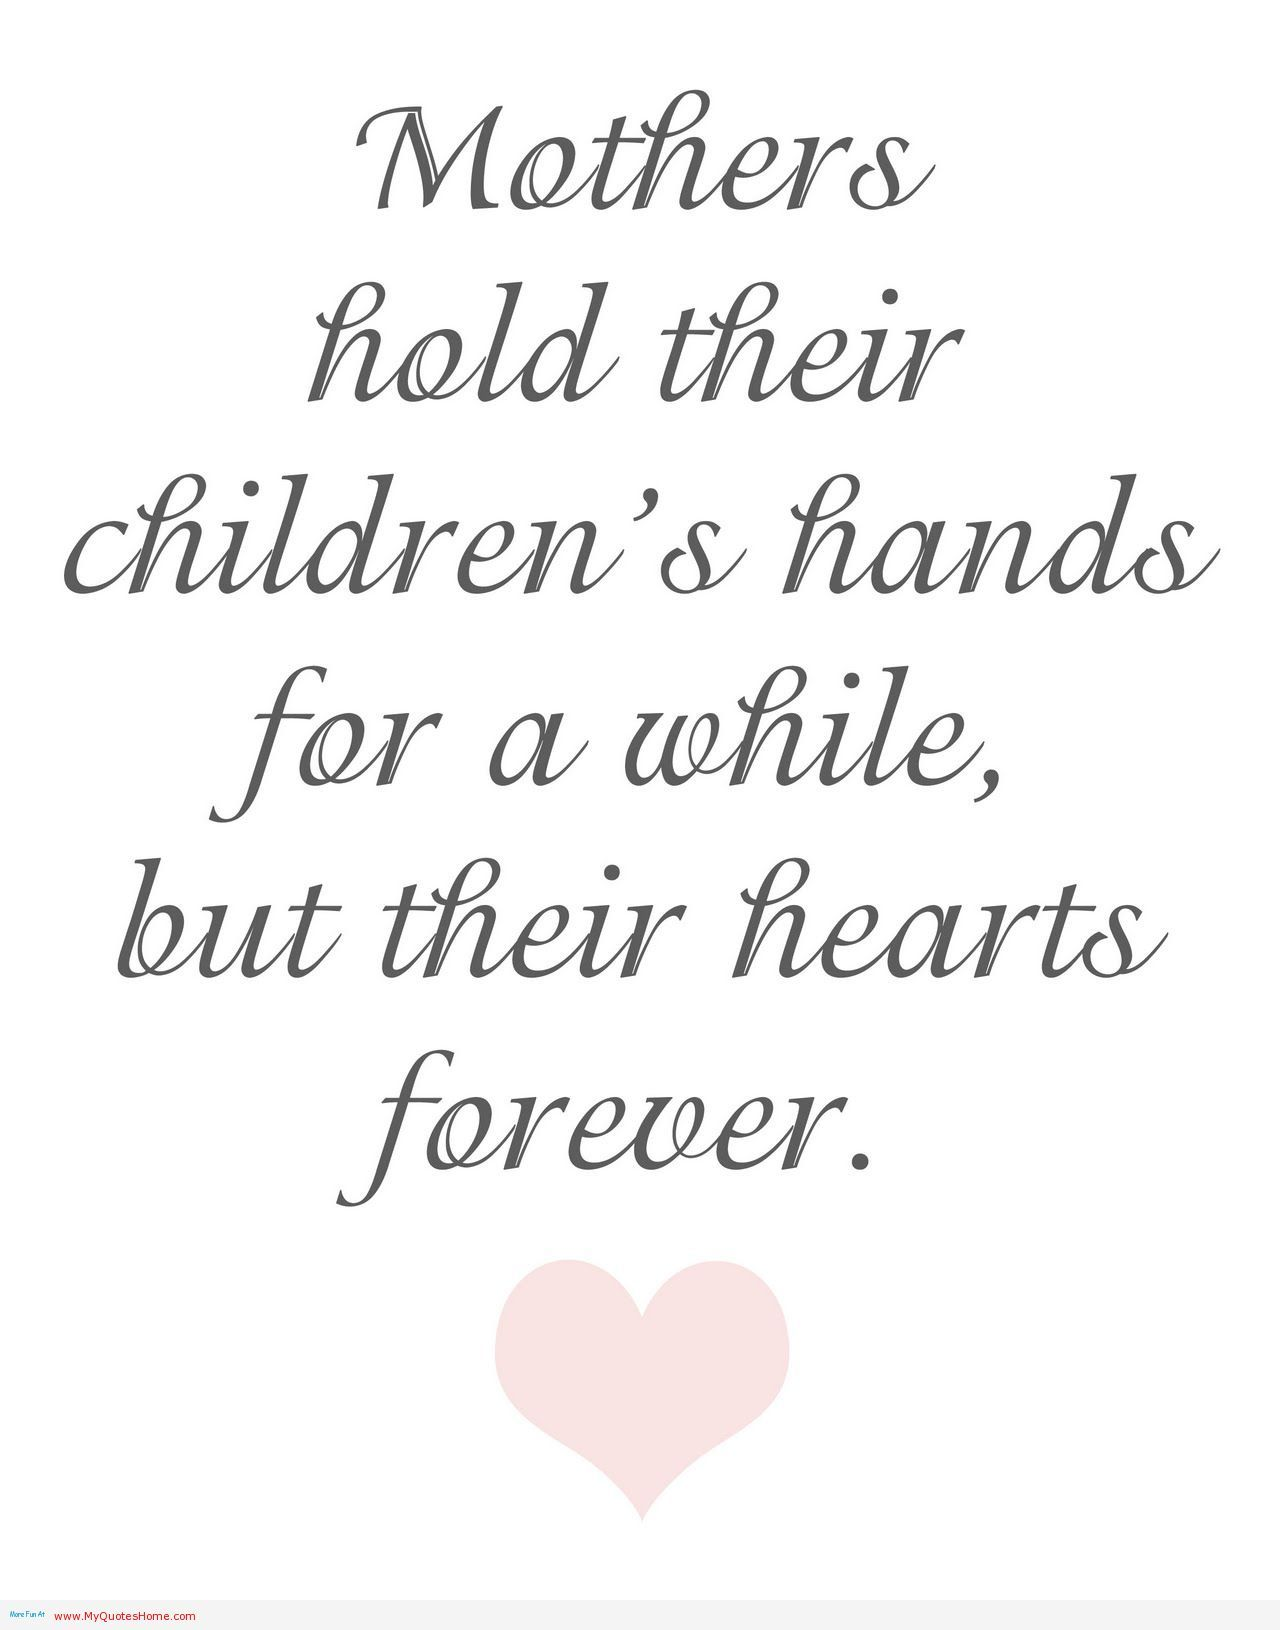 A Mothers Love Quotes Mothers Hold Their Childrens Hands Mothers Love Quotes  Tattoo